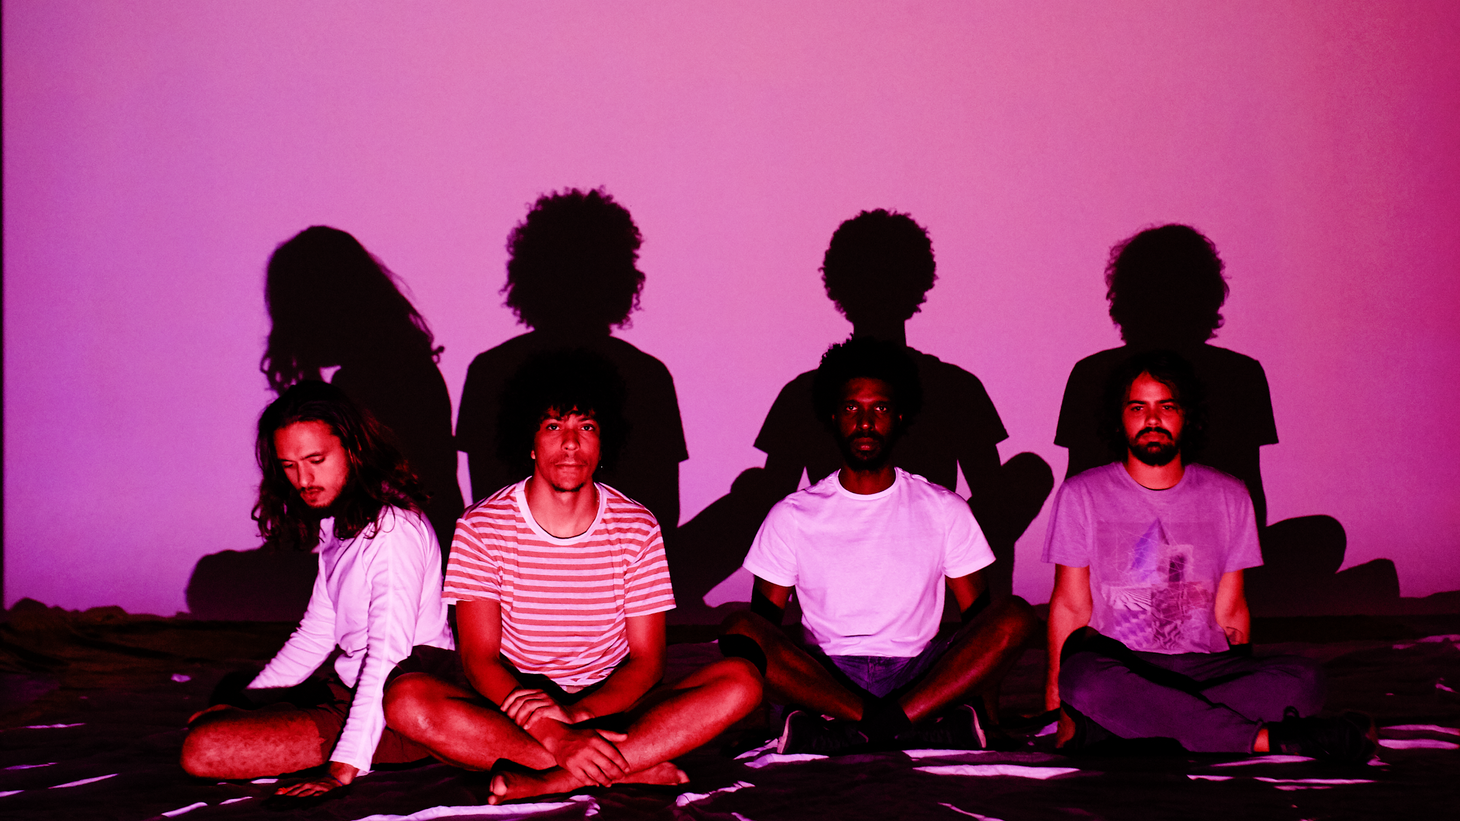 """""""Sombra Ou Duvida"""" (or Shadow Or Doubt) gives us clues to Boogarins' dark themes. The rhythmic track was cobbled together in between tours over the last 2 years, and is the title track to their new album."""